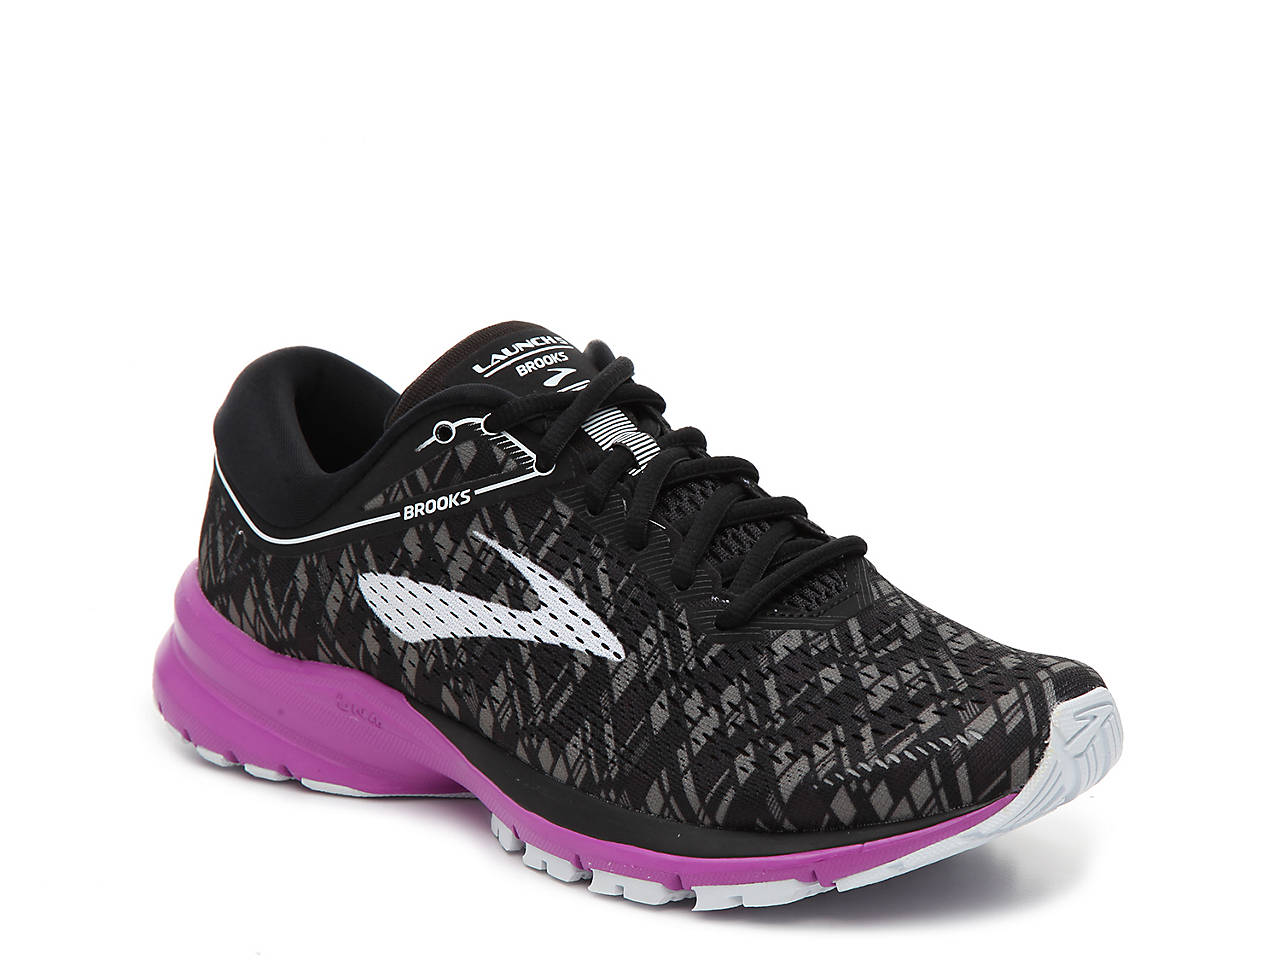 new style cda1b 2f062 Launch 5 Running Shoe - Women's